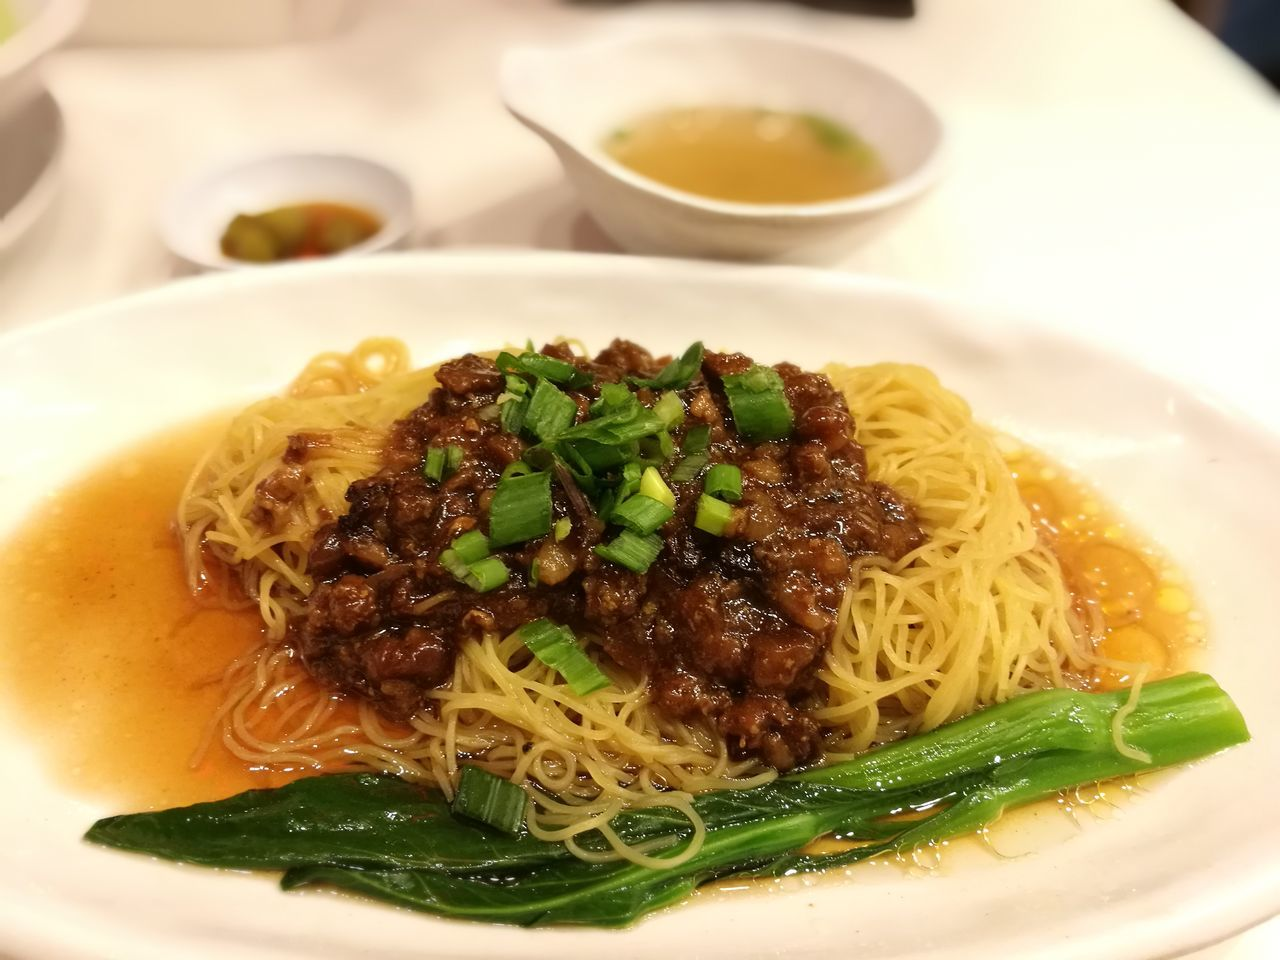 Hongkongfood Noodle Zhajiangmian Indoors  Food Plate Serving Size Meal Indulgence Vege Chinese Food Chinesefood Drynoodle Dry Noodles Pork